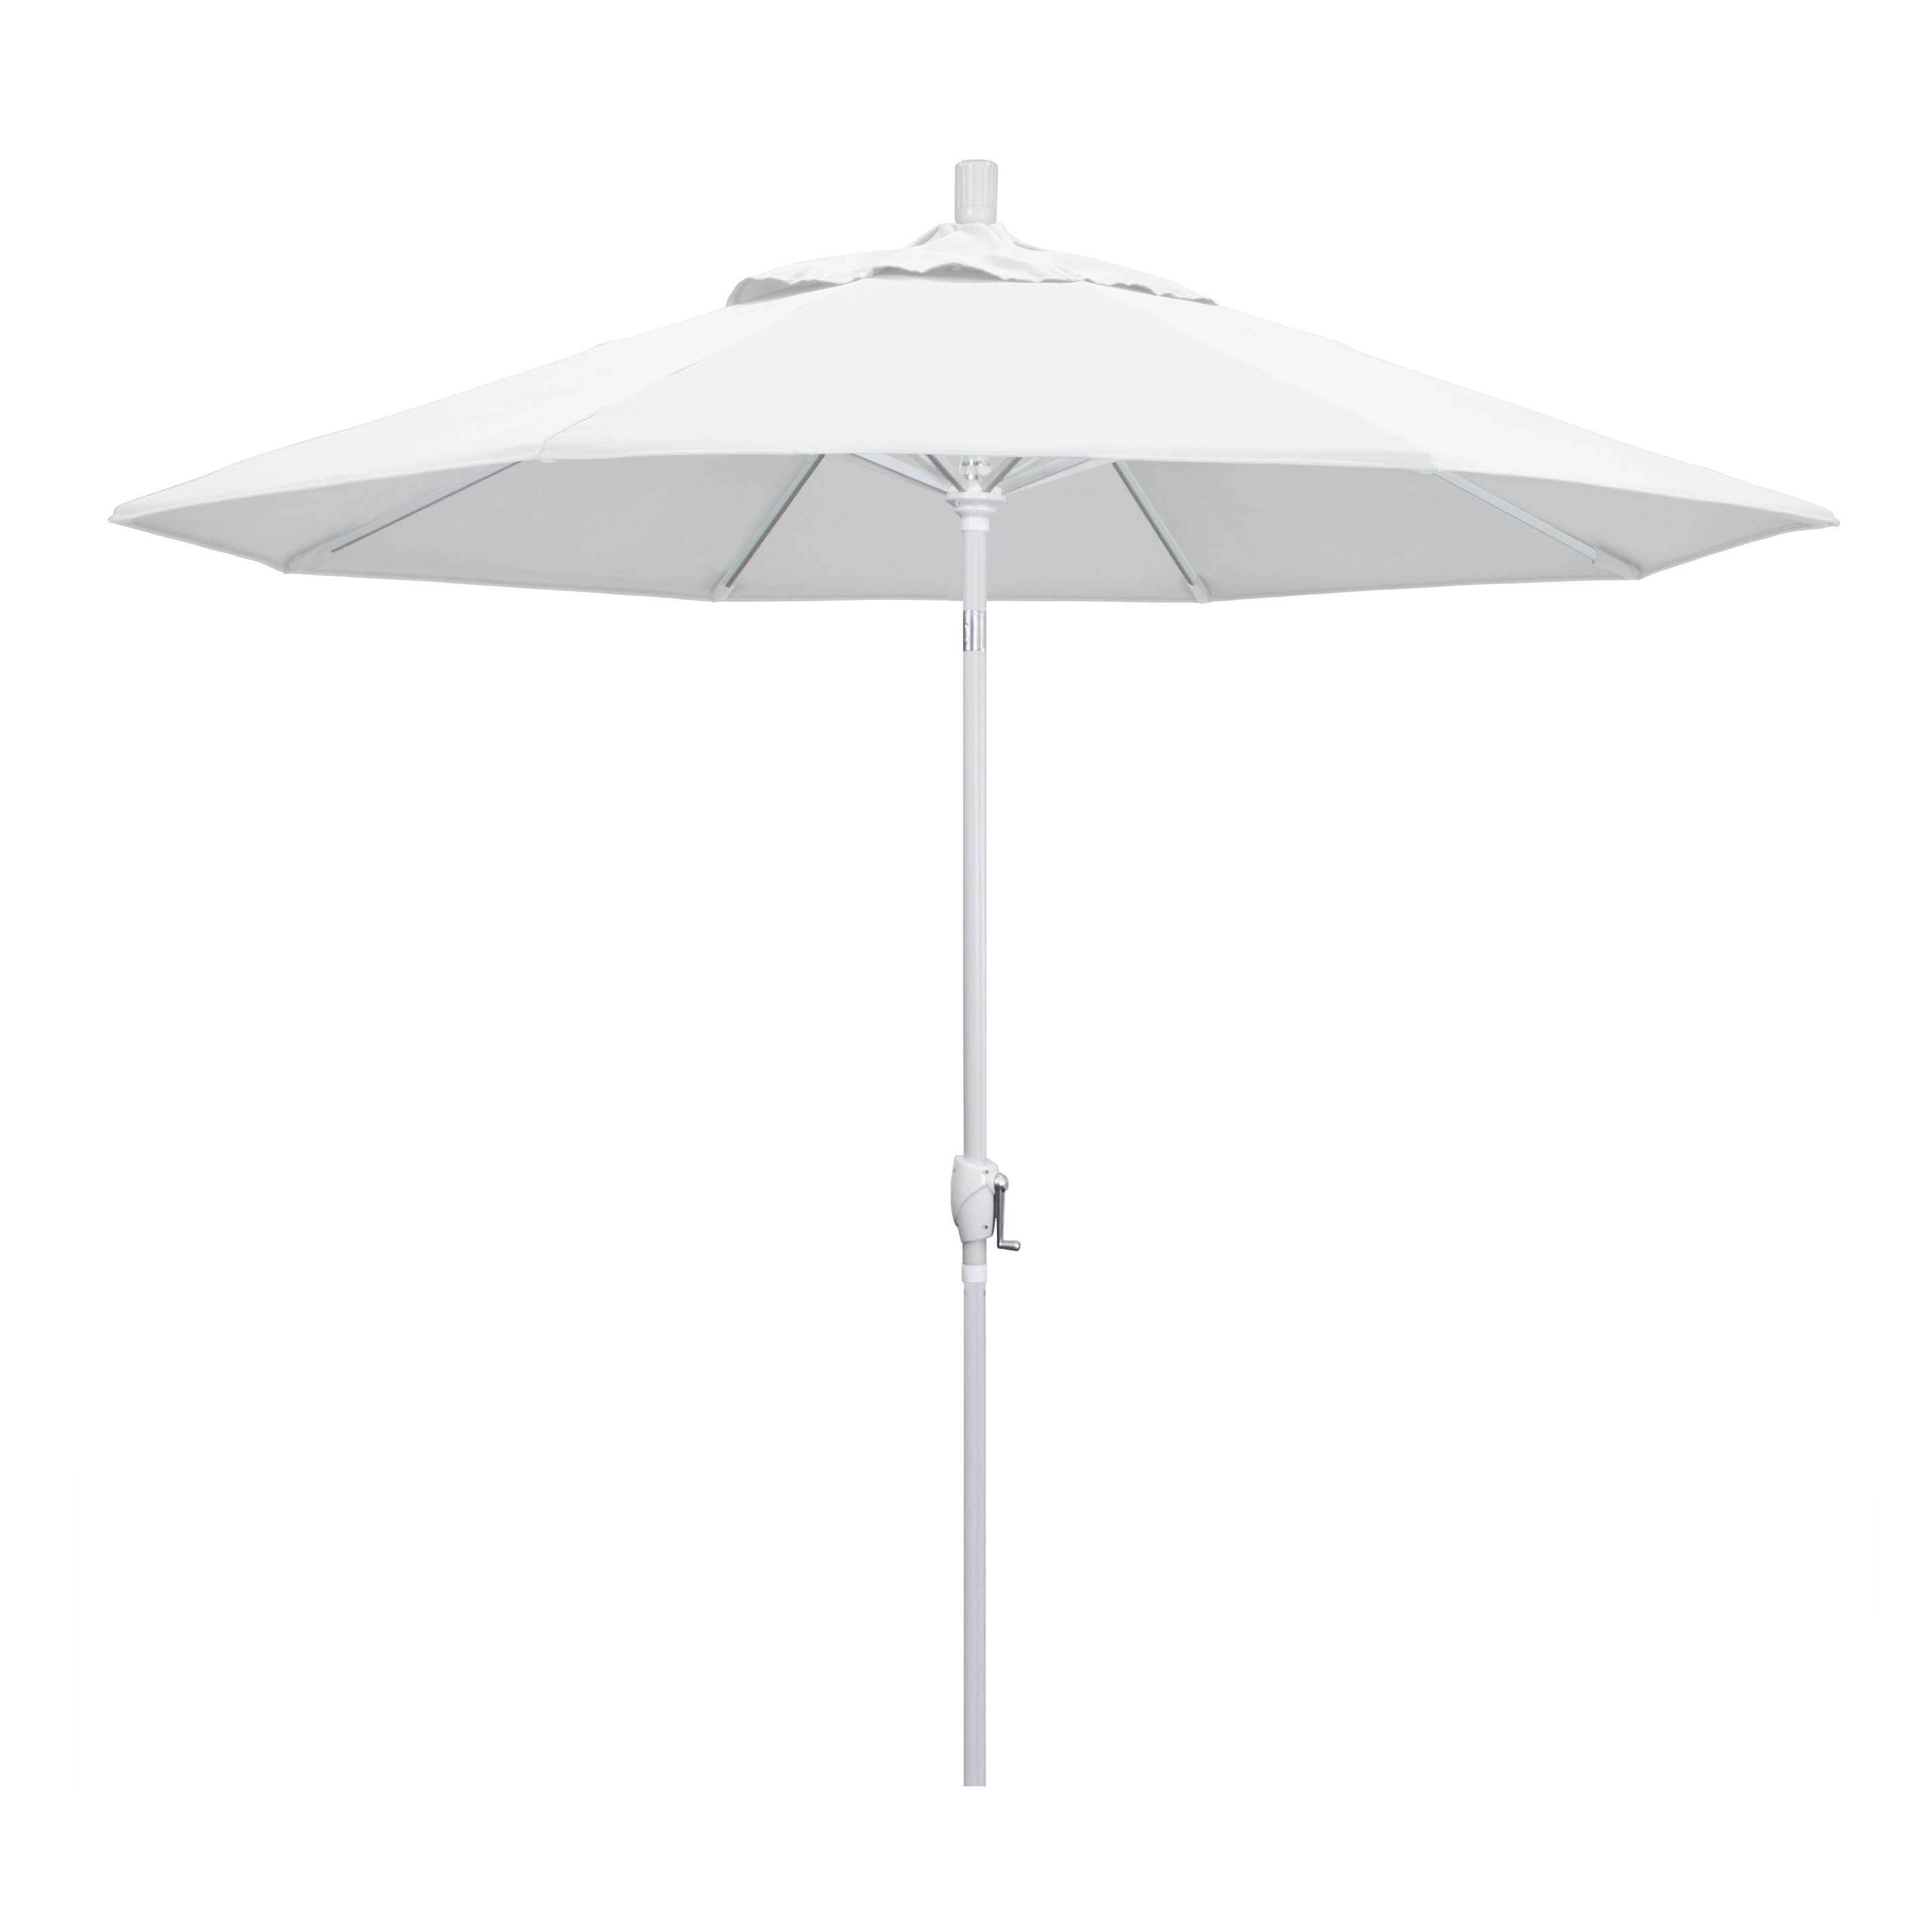 Newest Monty Market Umbrellas Pertaining To Darby Home Co Wallach 9' Market Umbrella (Gallery 17 of 20)